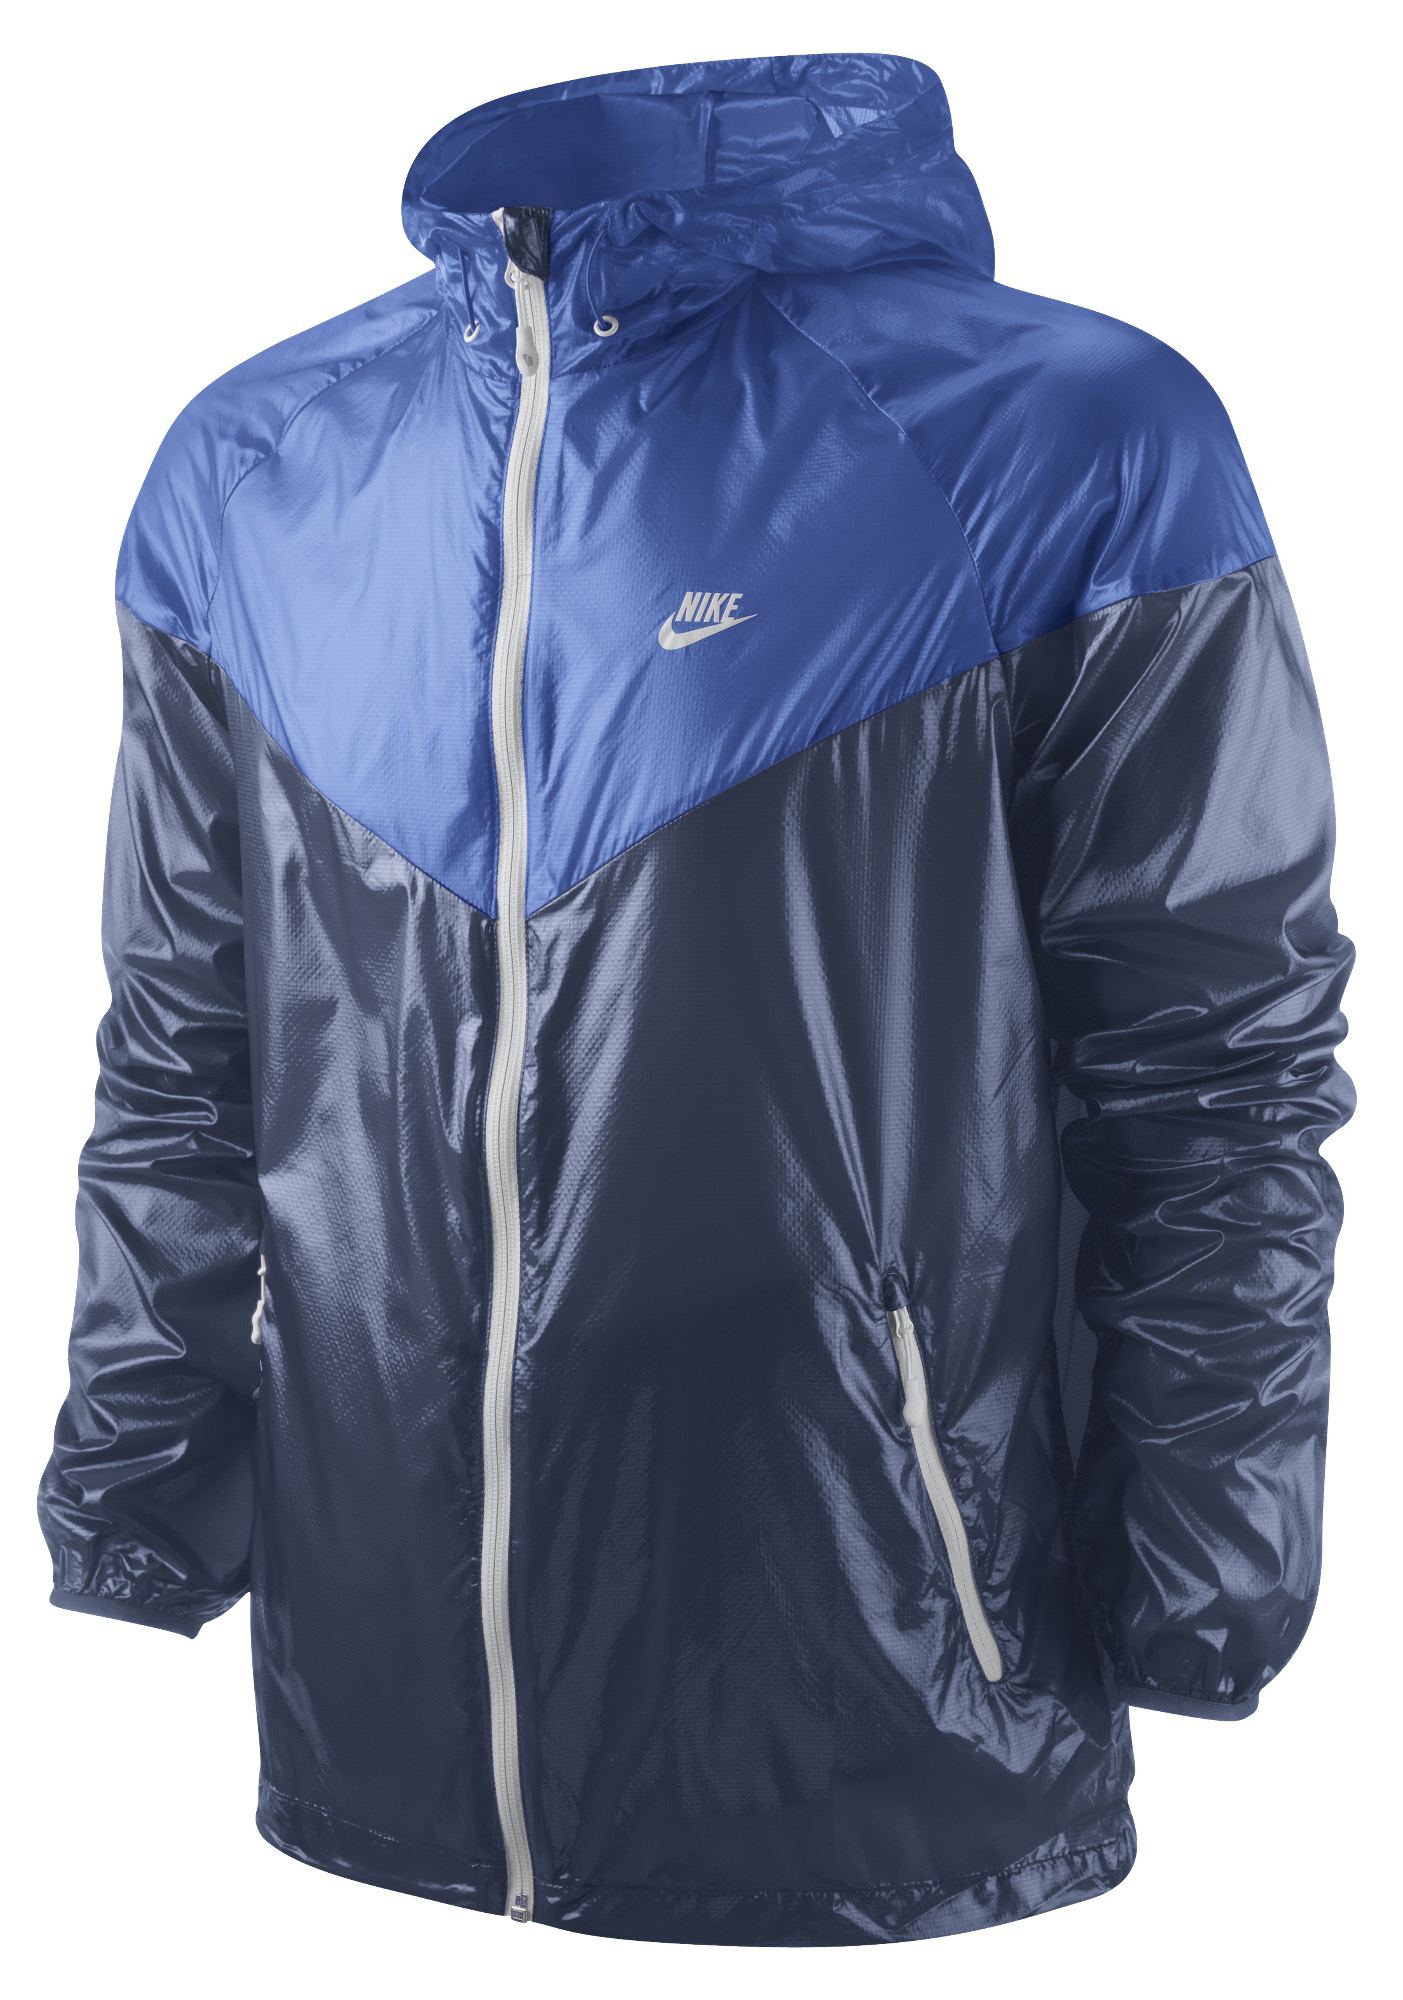 Nike - Windrunner Summerized Blå/Navy